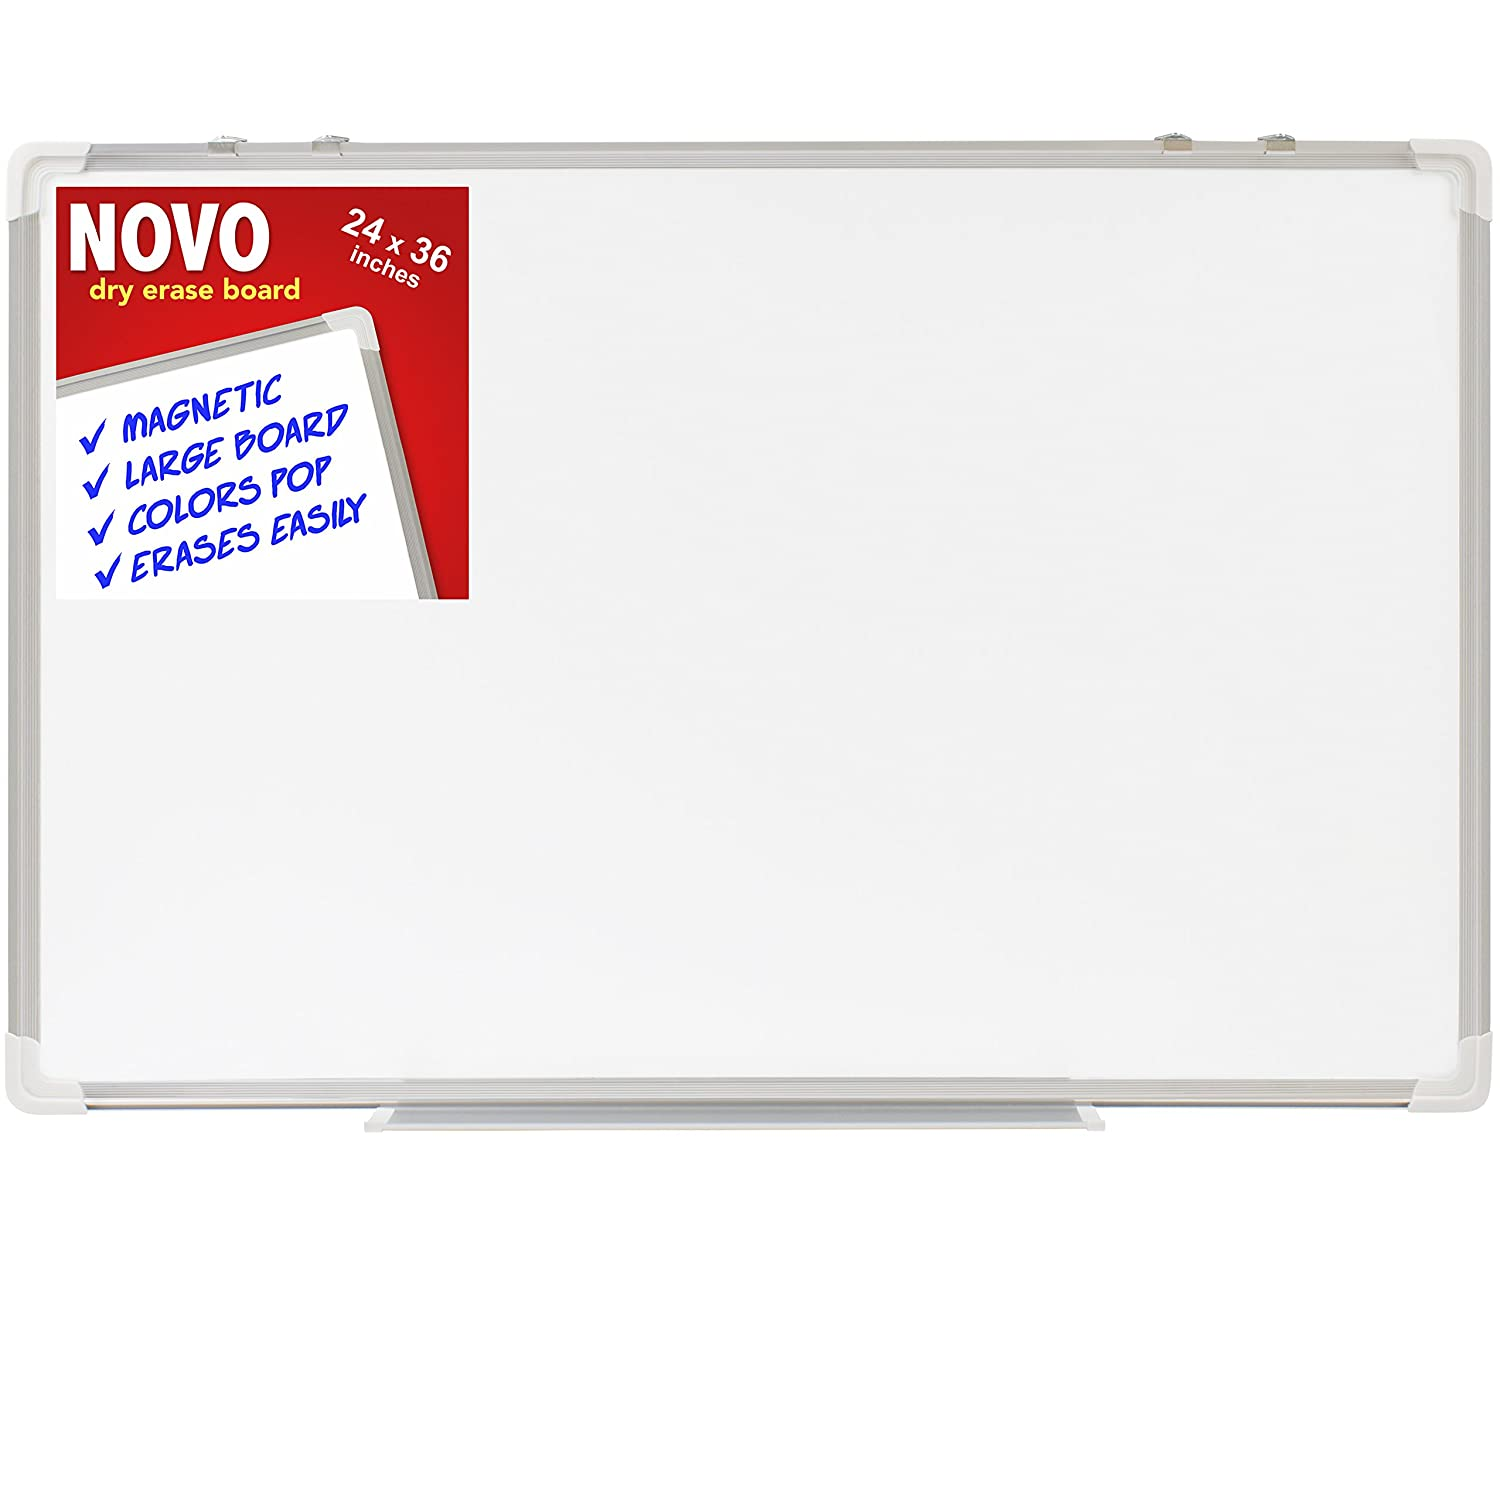 Dry Erase Board 24x36 | LARGE Magnetic Whiteboard with Aluminum Frame | Dryerase Marker Boards for Office Bulletin or Calendar | Melamine Perfect for Easel and Universal Black Erasers Markers Novo Basics DRYERASE2436